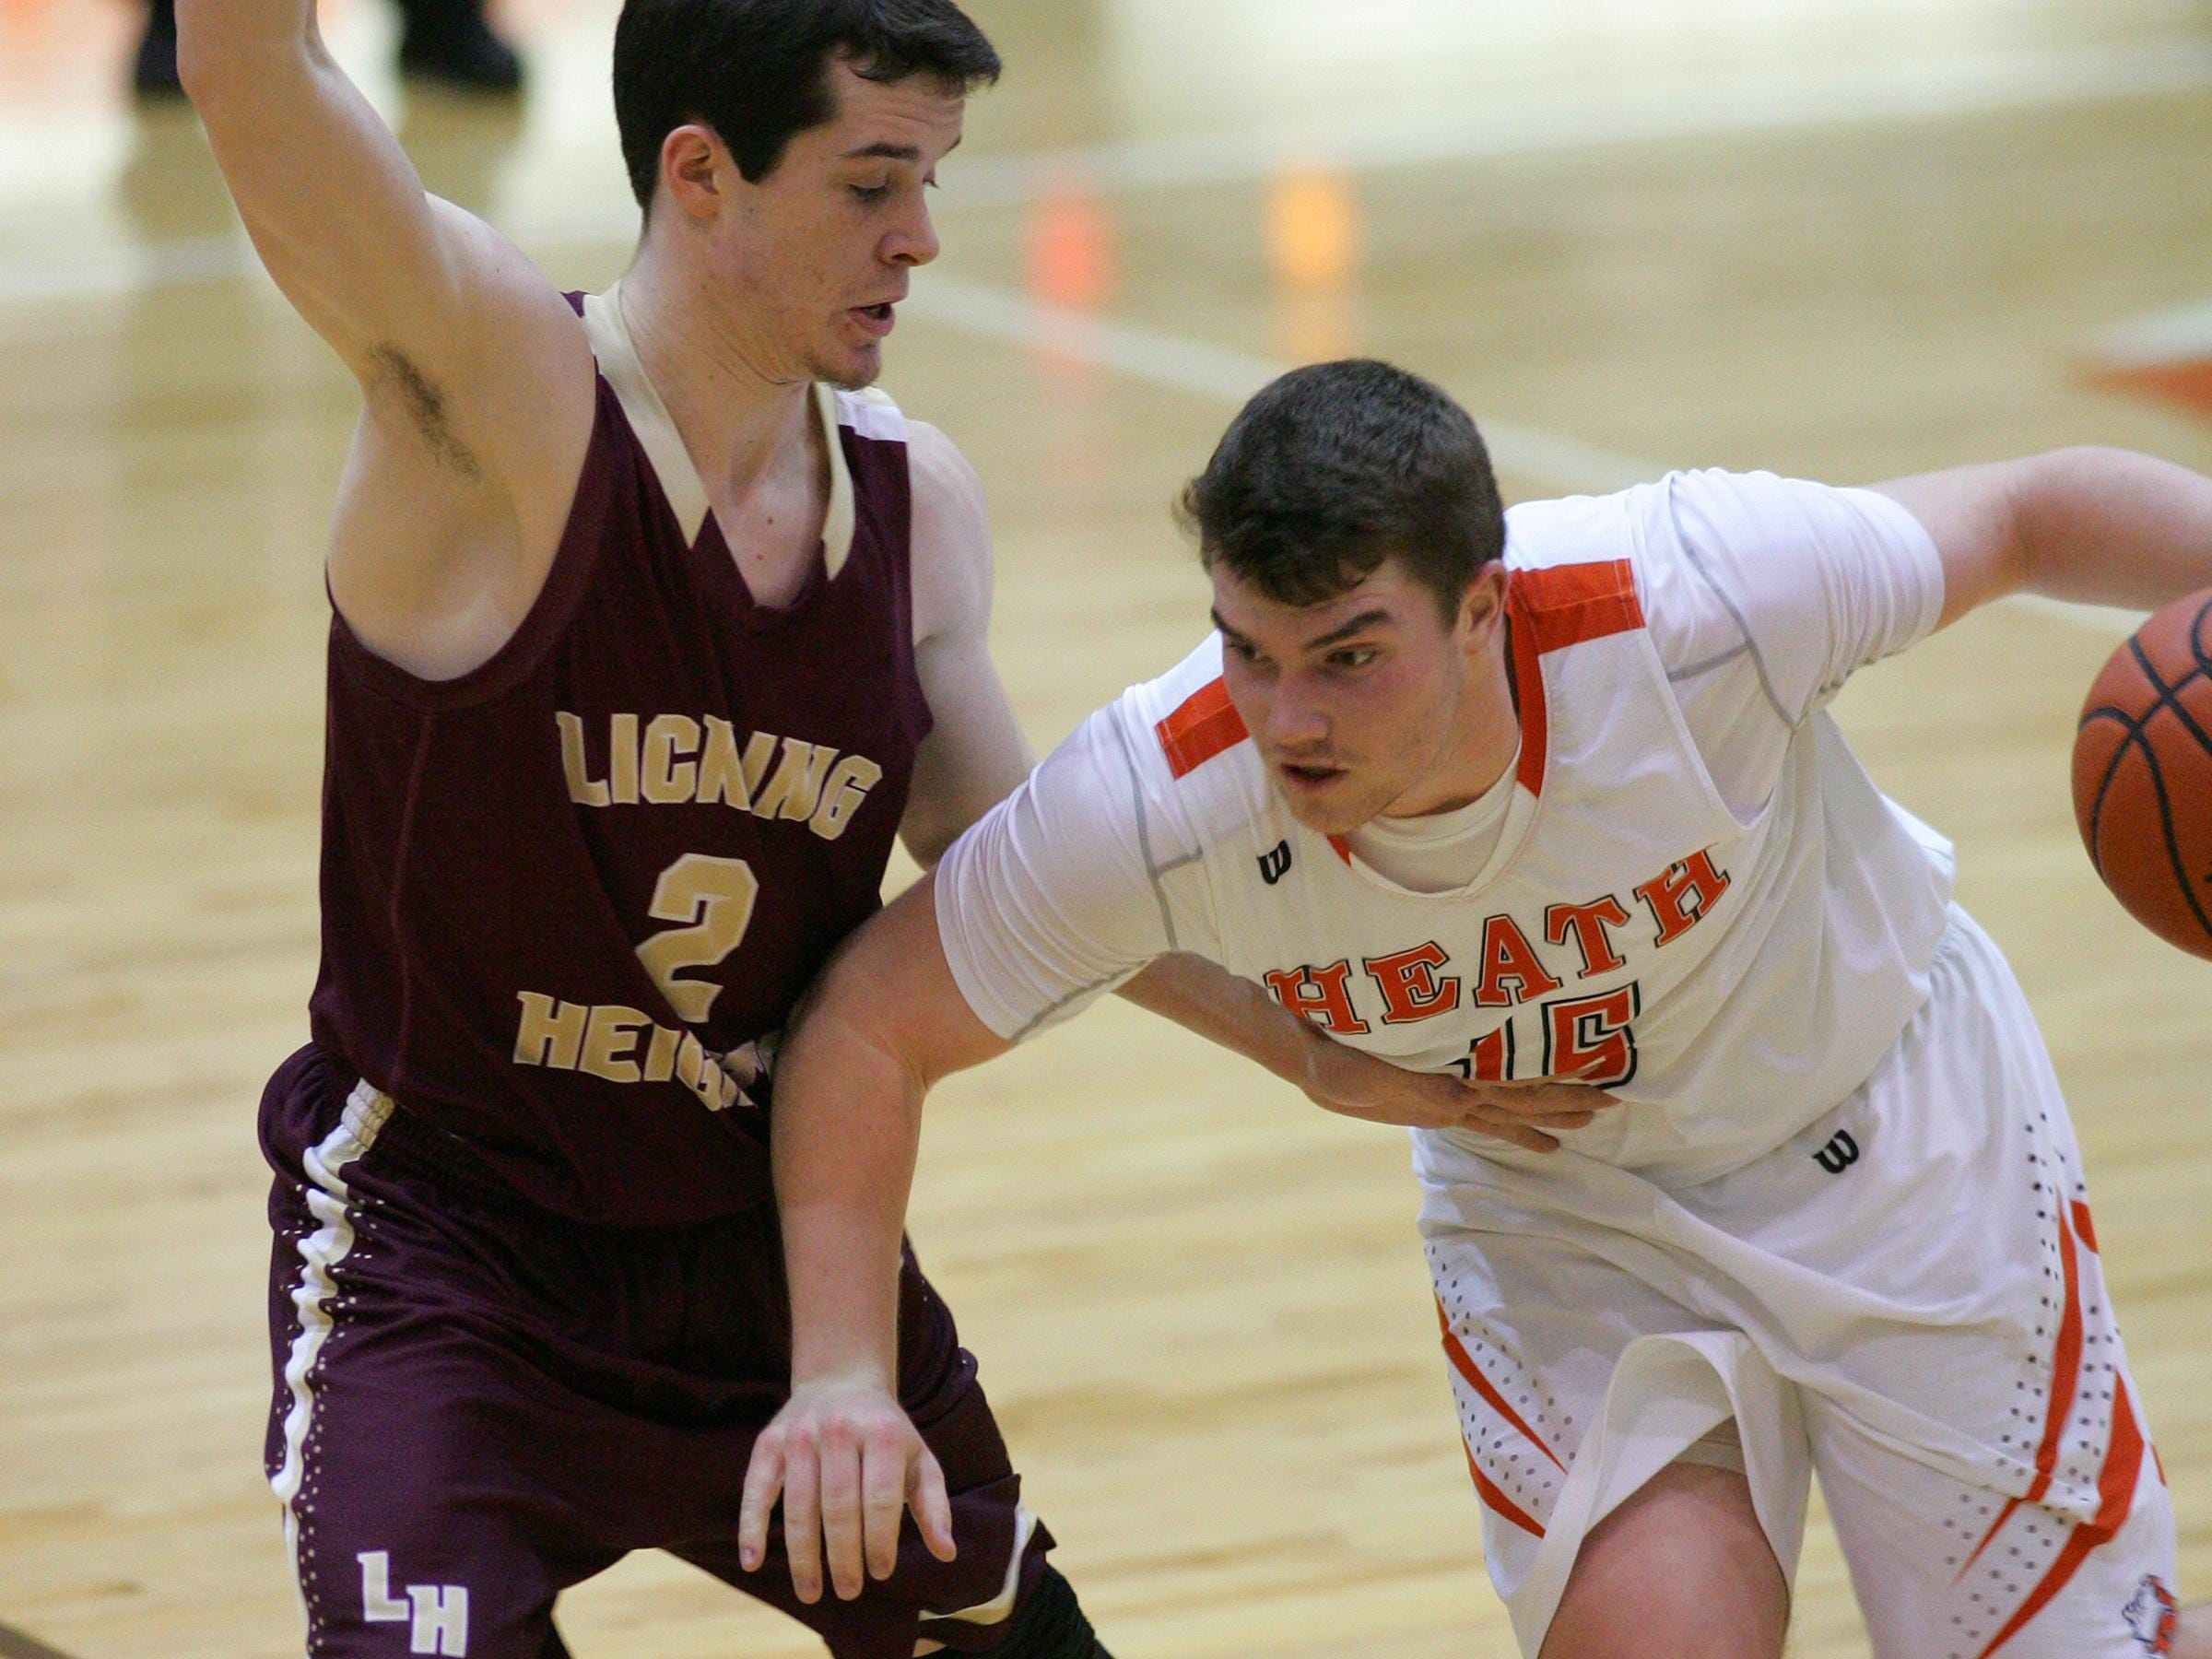 Heath's Payton Booth drives to the basket against a Licking Heights defender during a 2014-15 game.